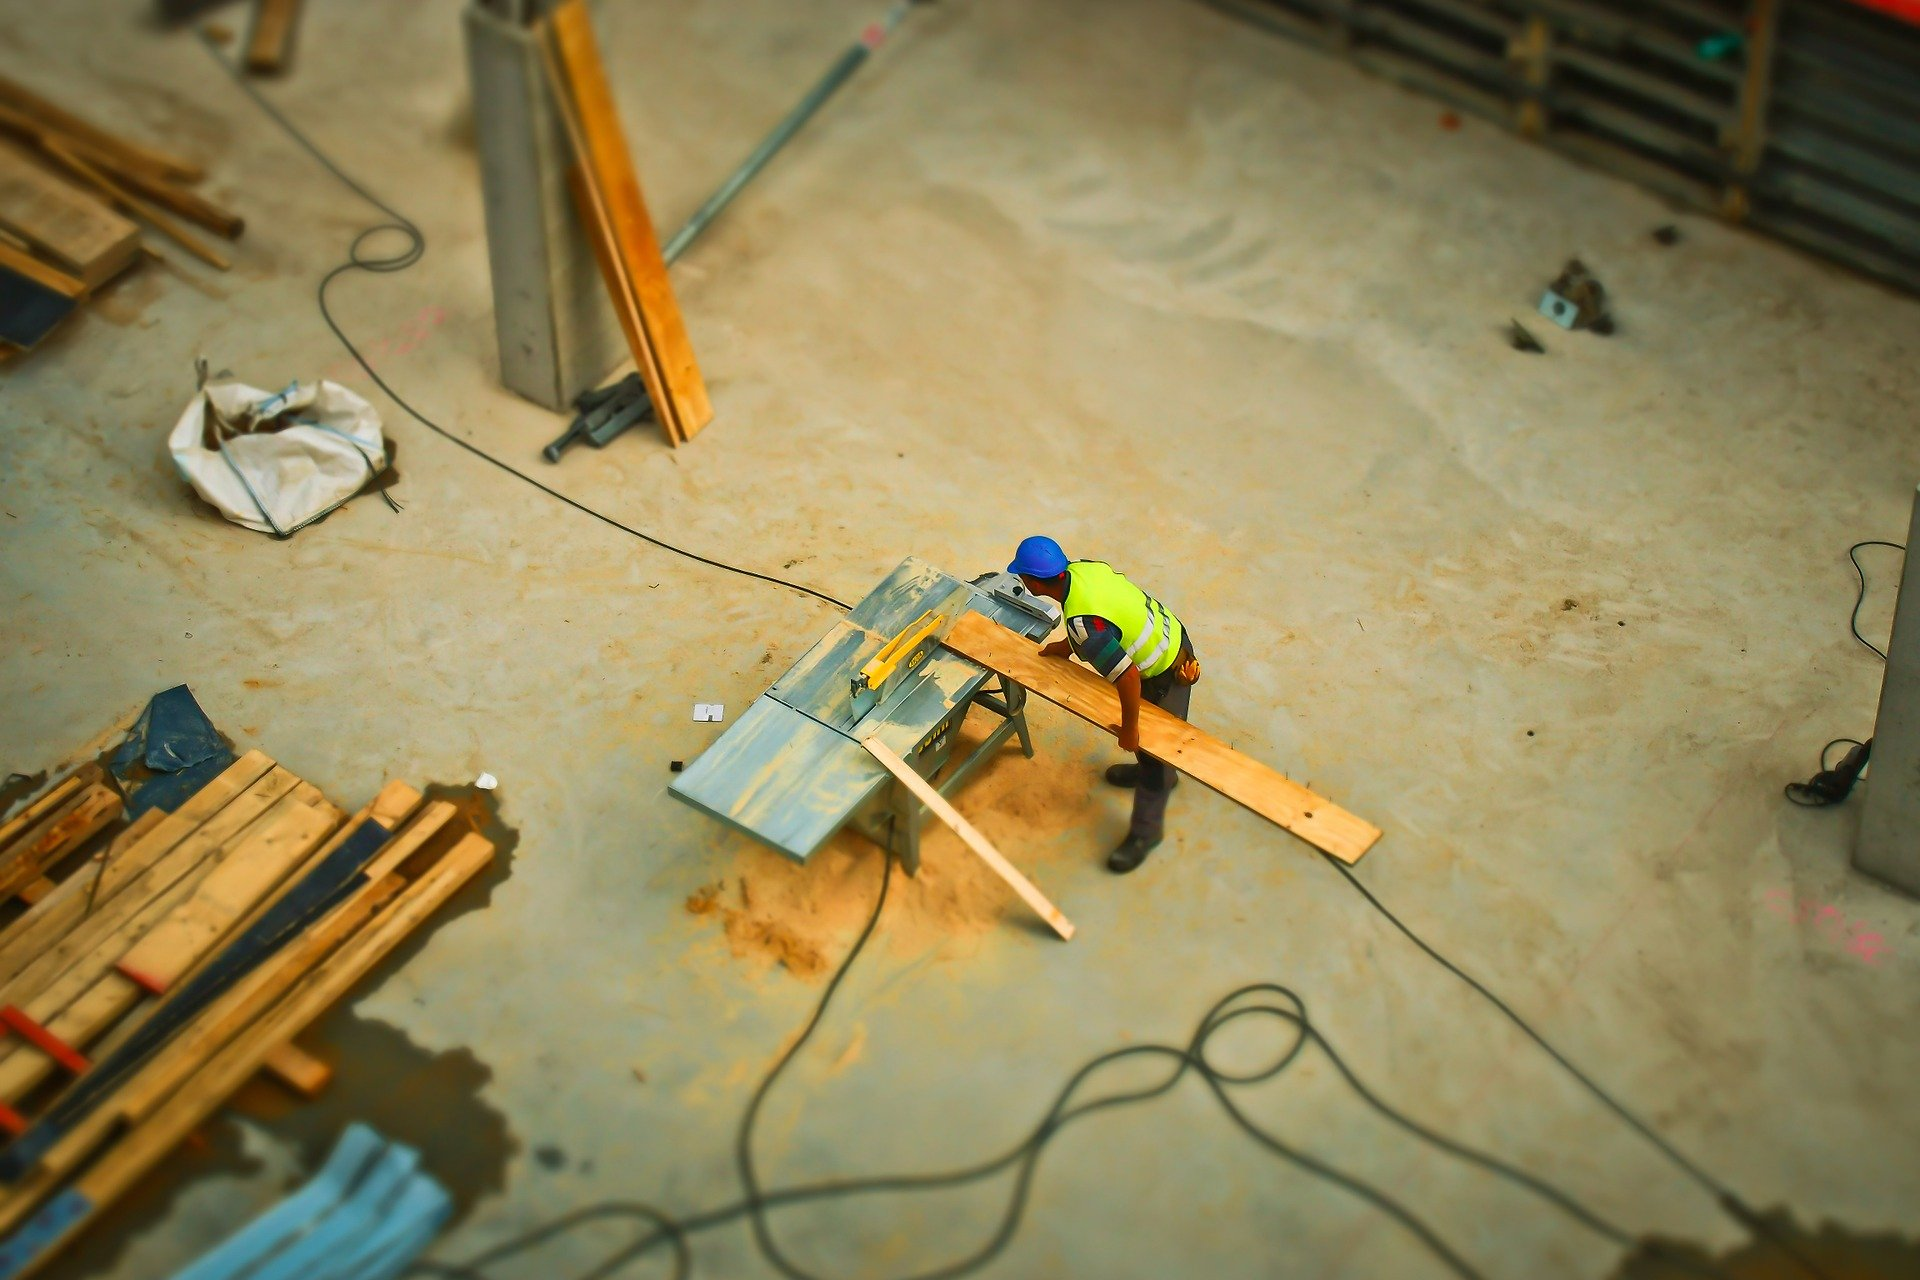 Overhead view of construction worker sawing a long piece of wood